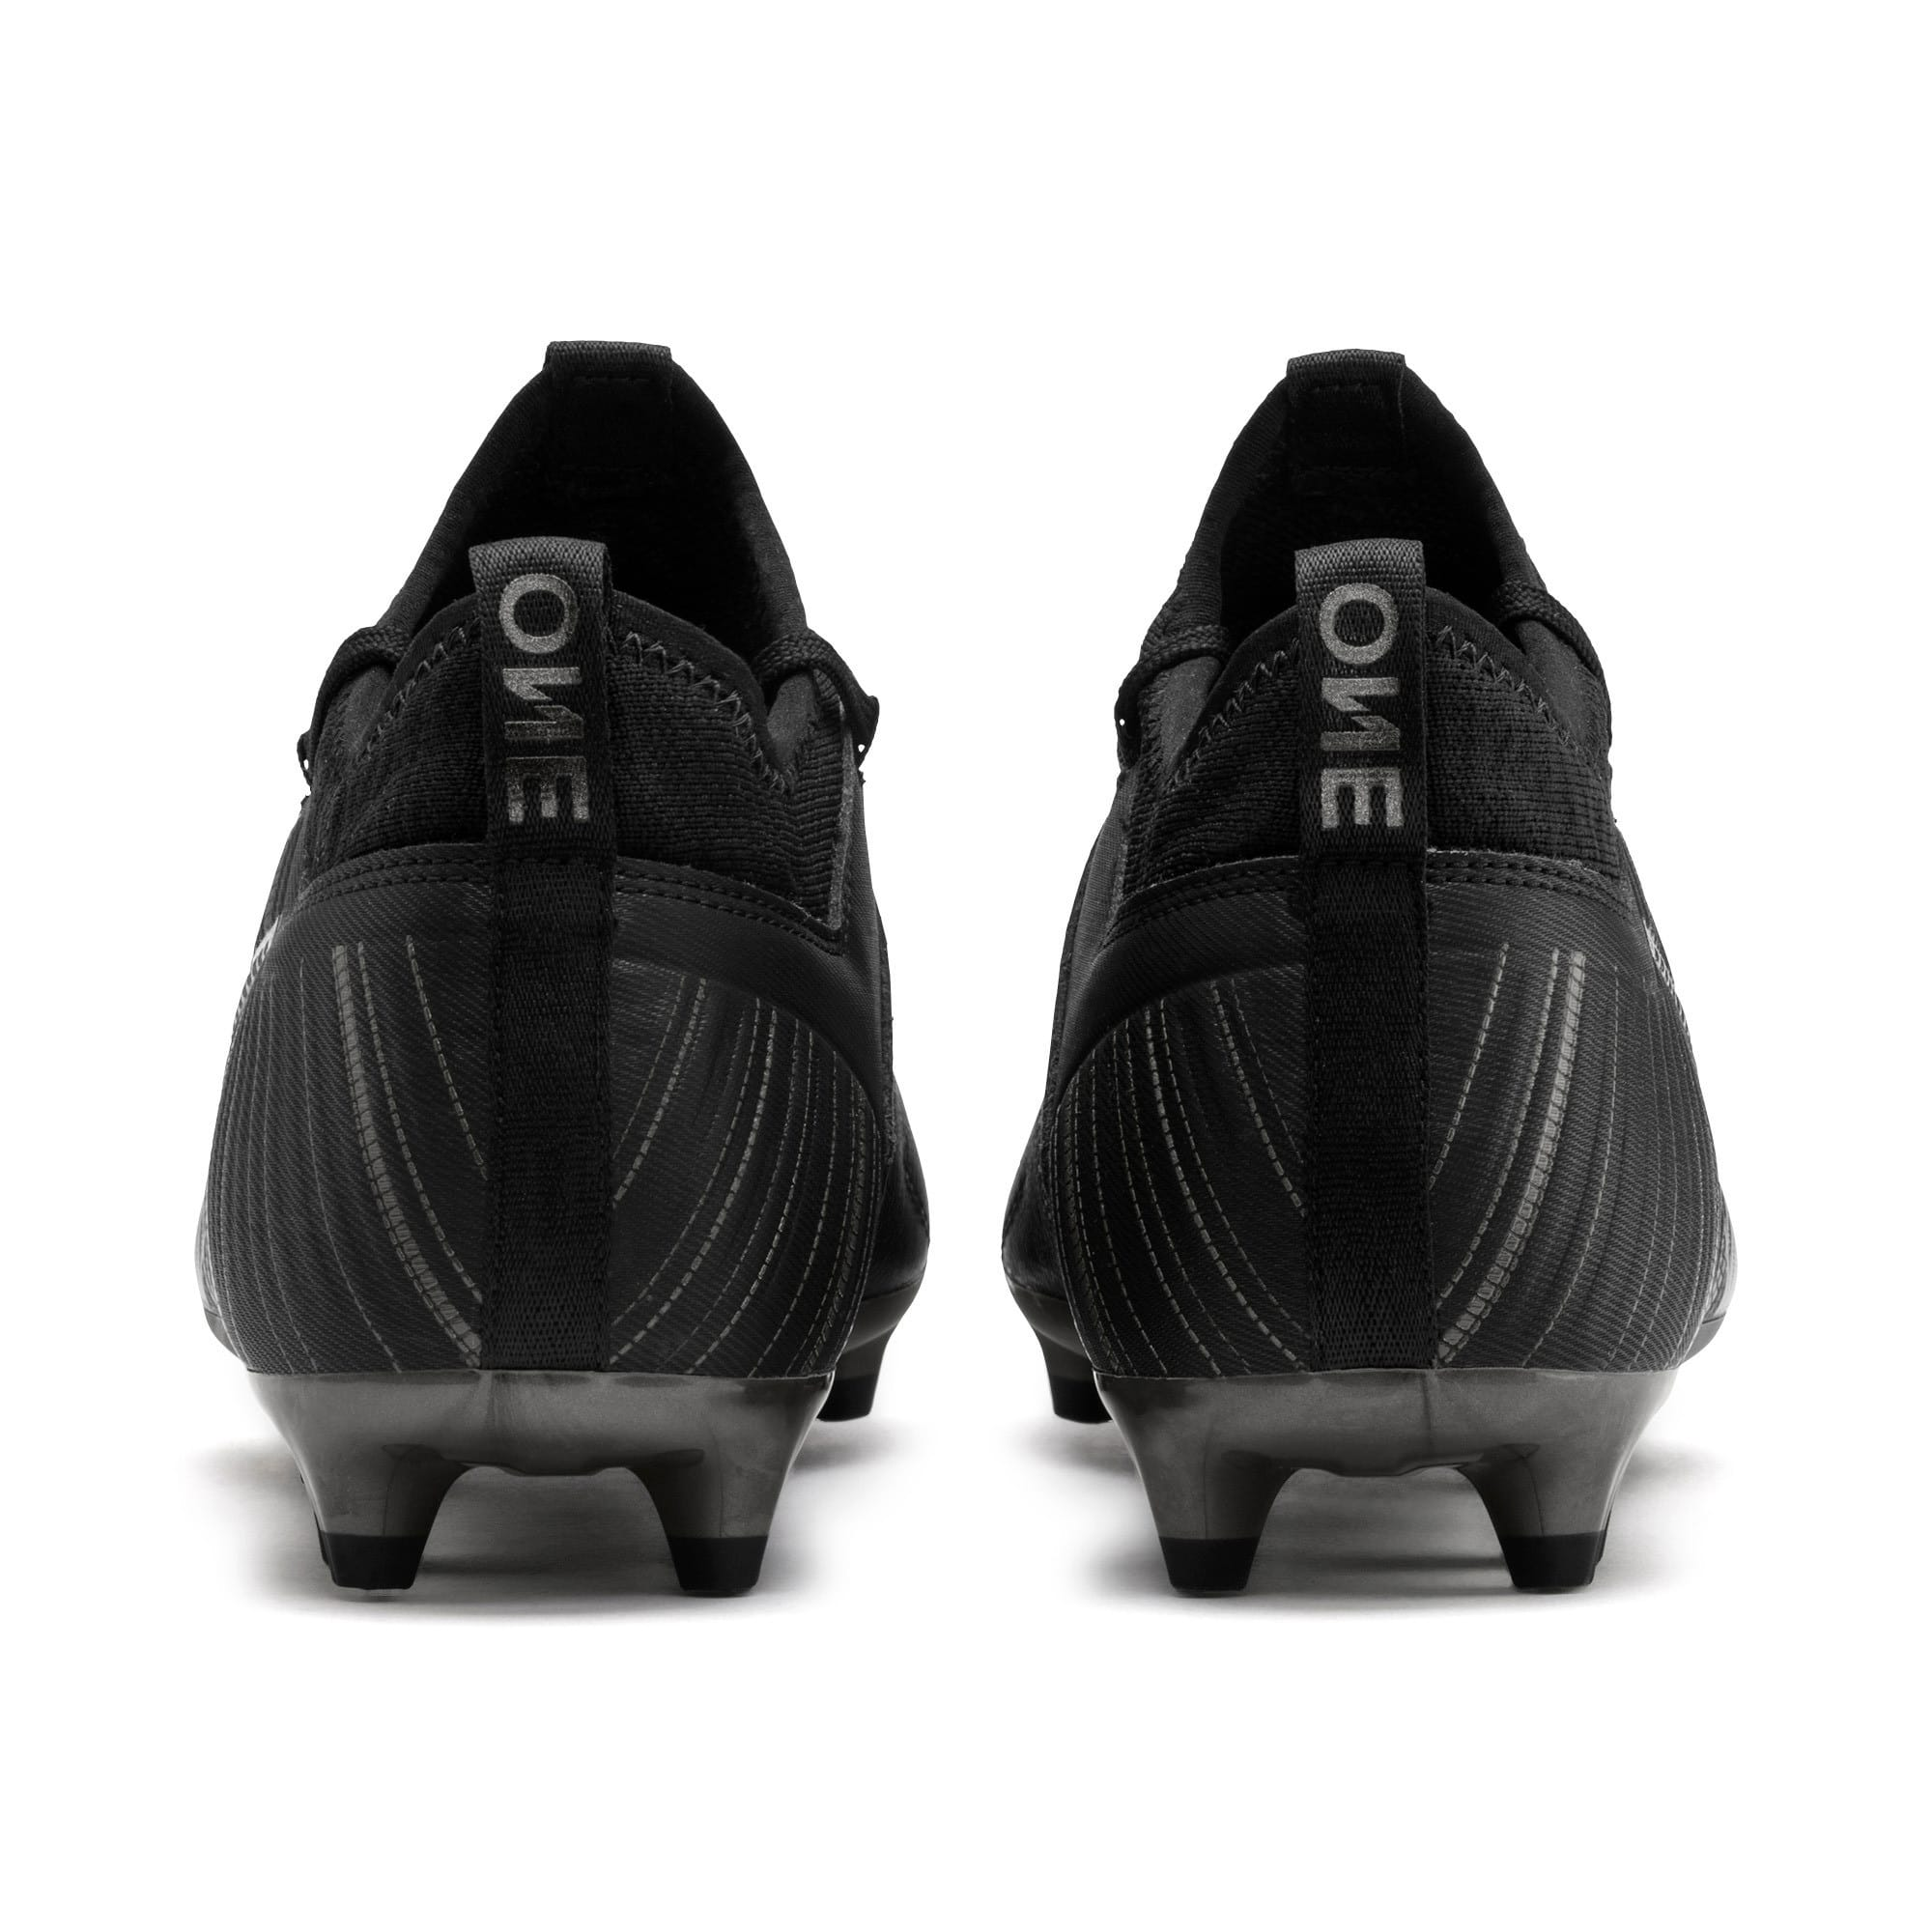 Thumbnail 4 of PUMA ONE 5.3 FG/AG Men's Football Boots, Black-Black-Puma Aged Silver, medium